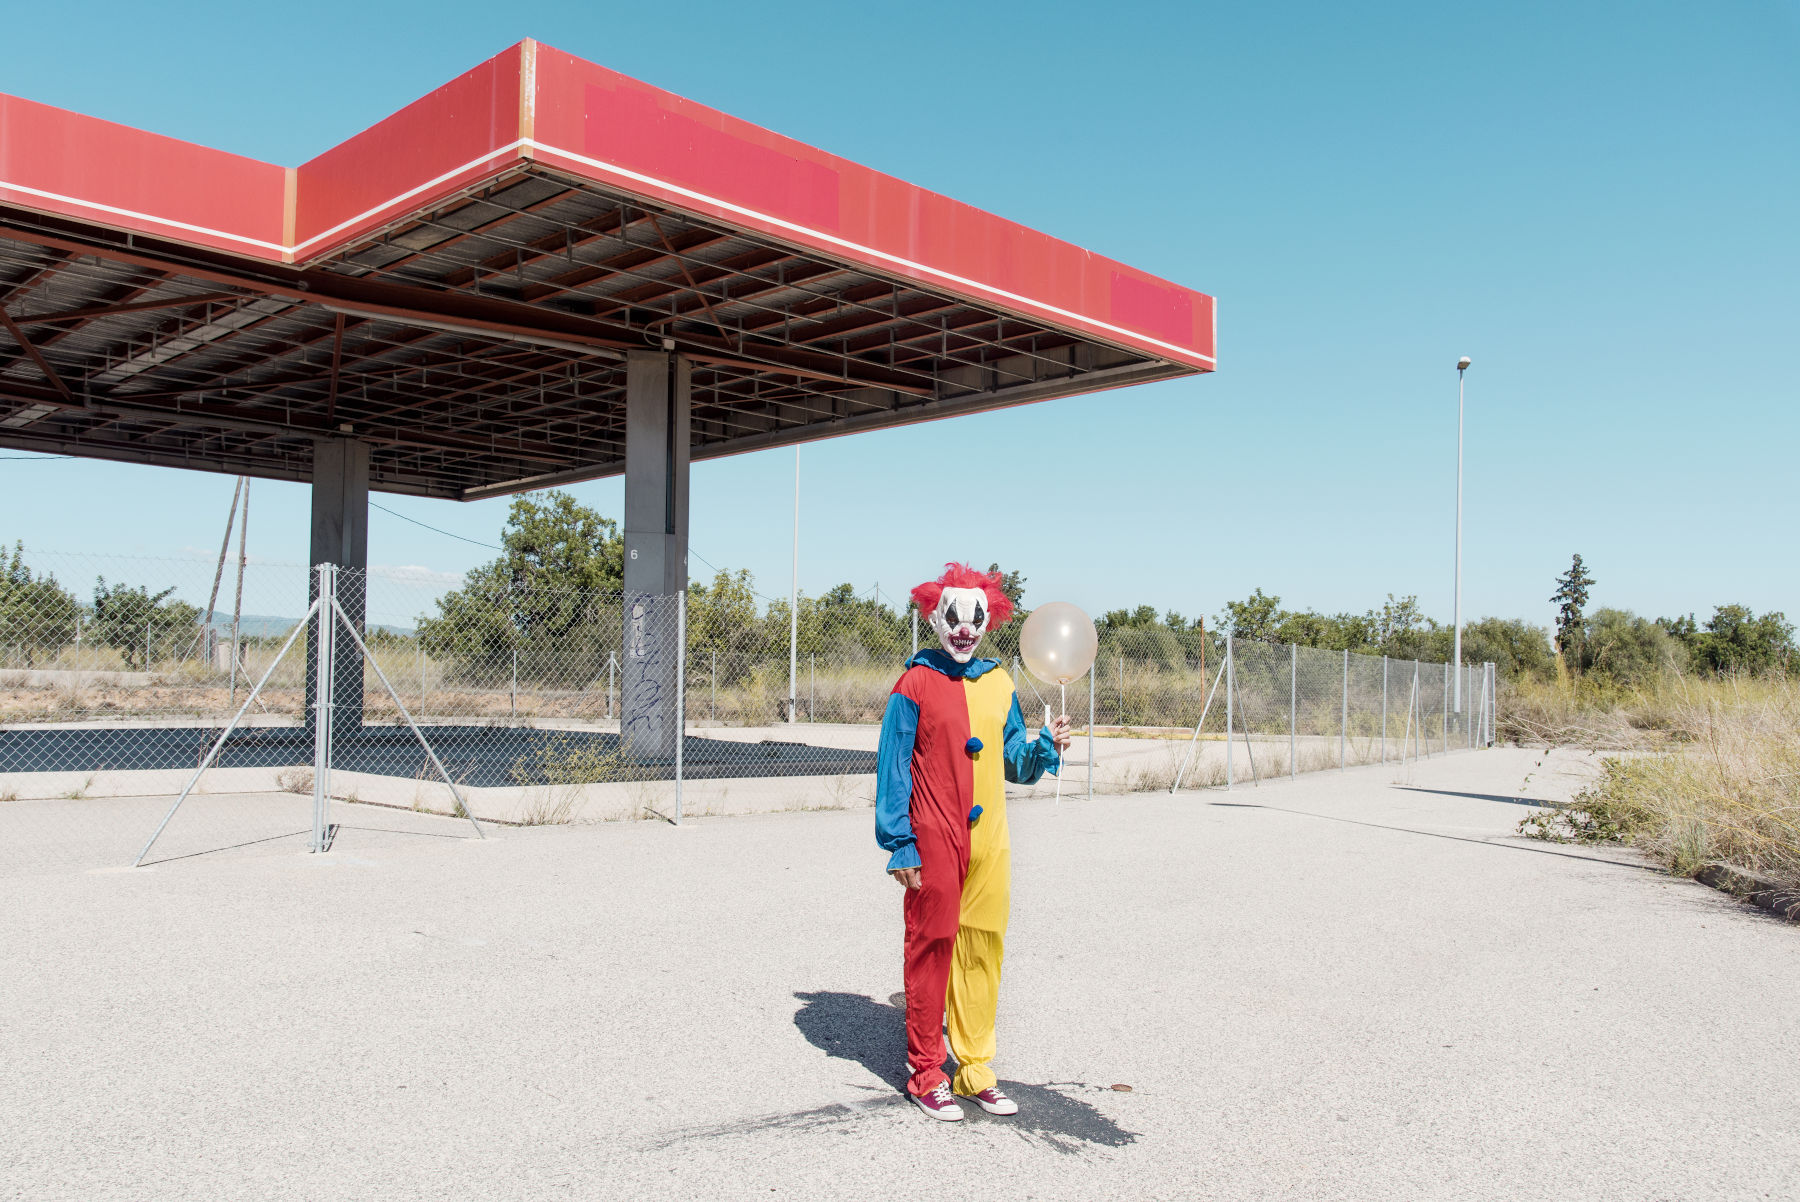 Where Should You Focus Your Time and Energy in Clown World? (Warning: Extreme Honks Ahead)